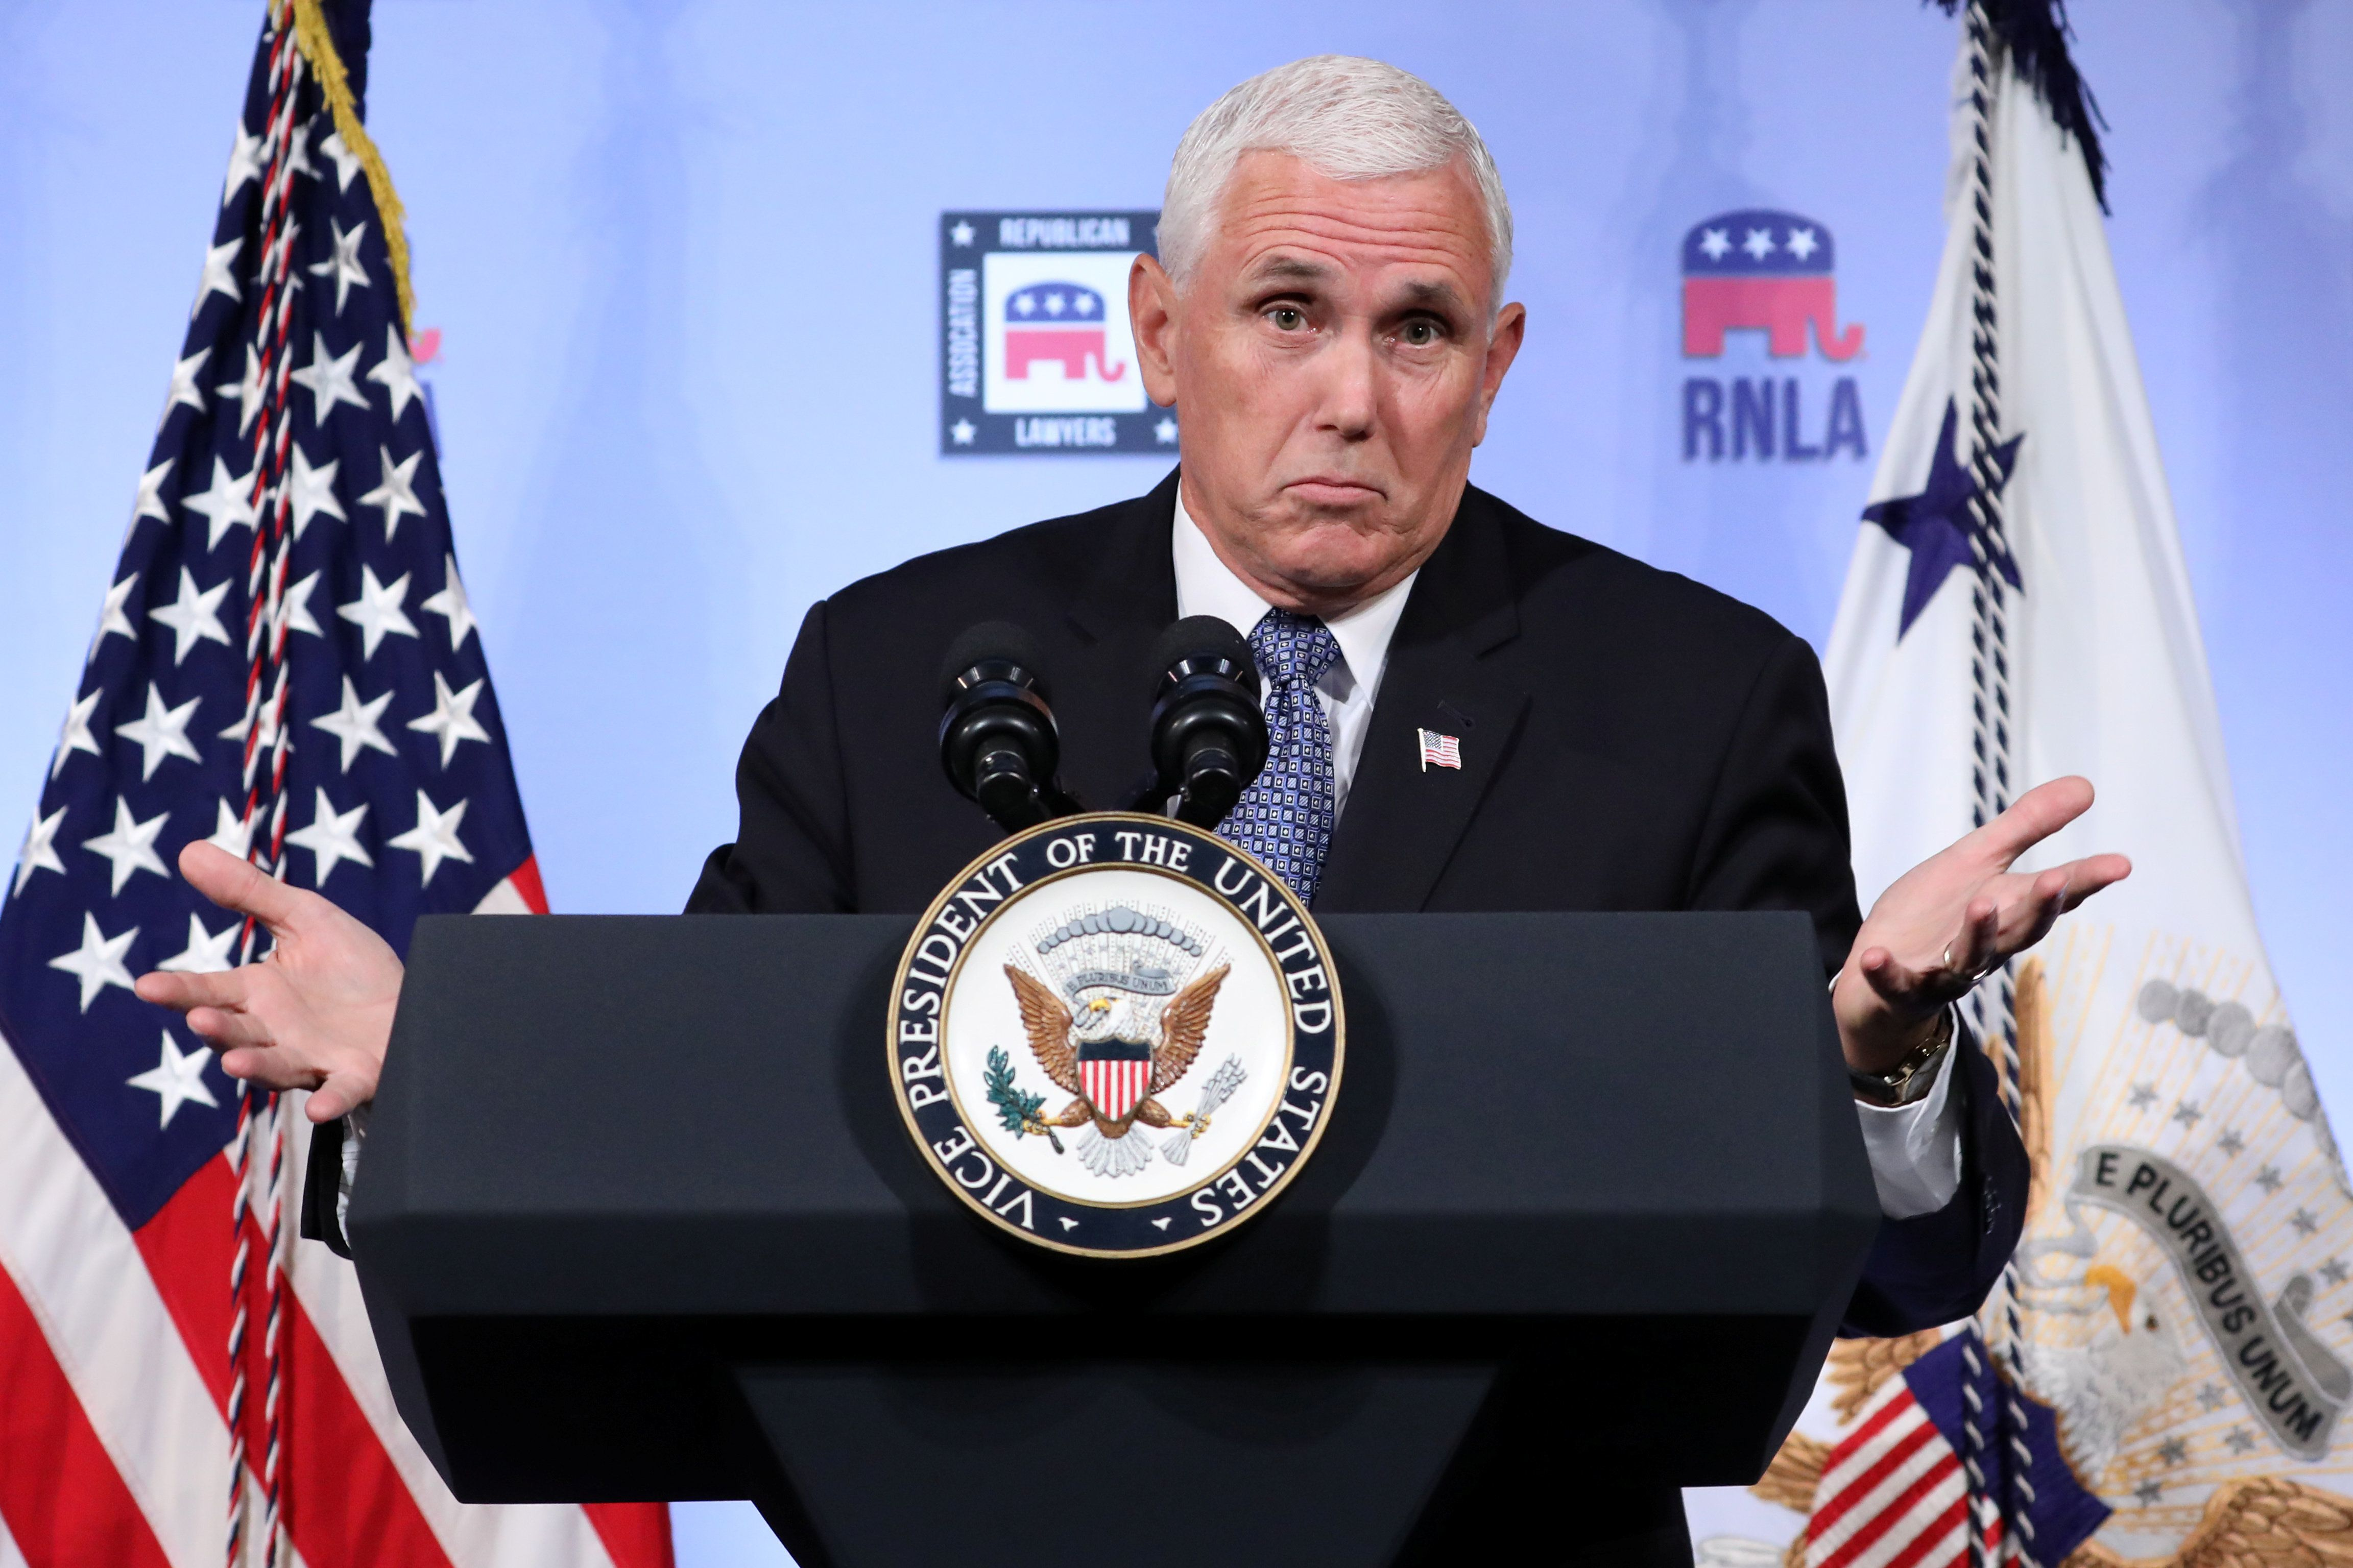 U.S. Vice President Mike Pence delivers a speech at the Republican National Lawyers Association (RNLA) in Washington, U.S., August 24, 2018. REUTERS/Chris Wattie